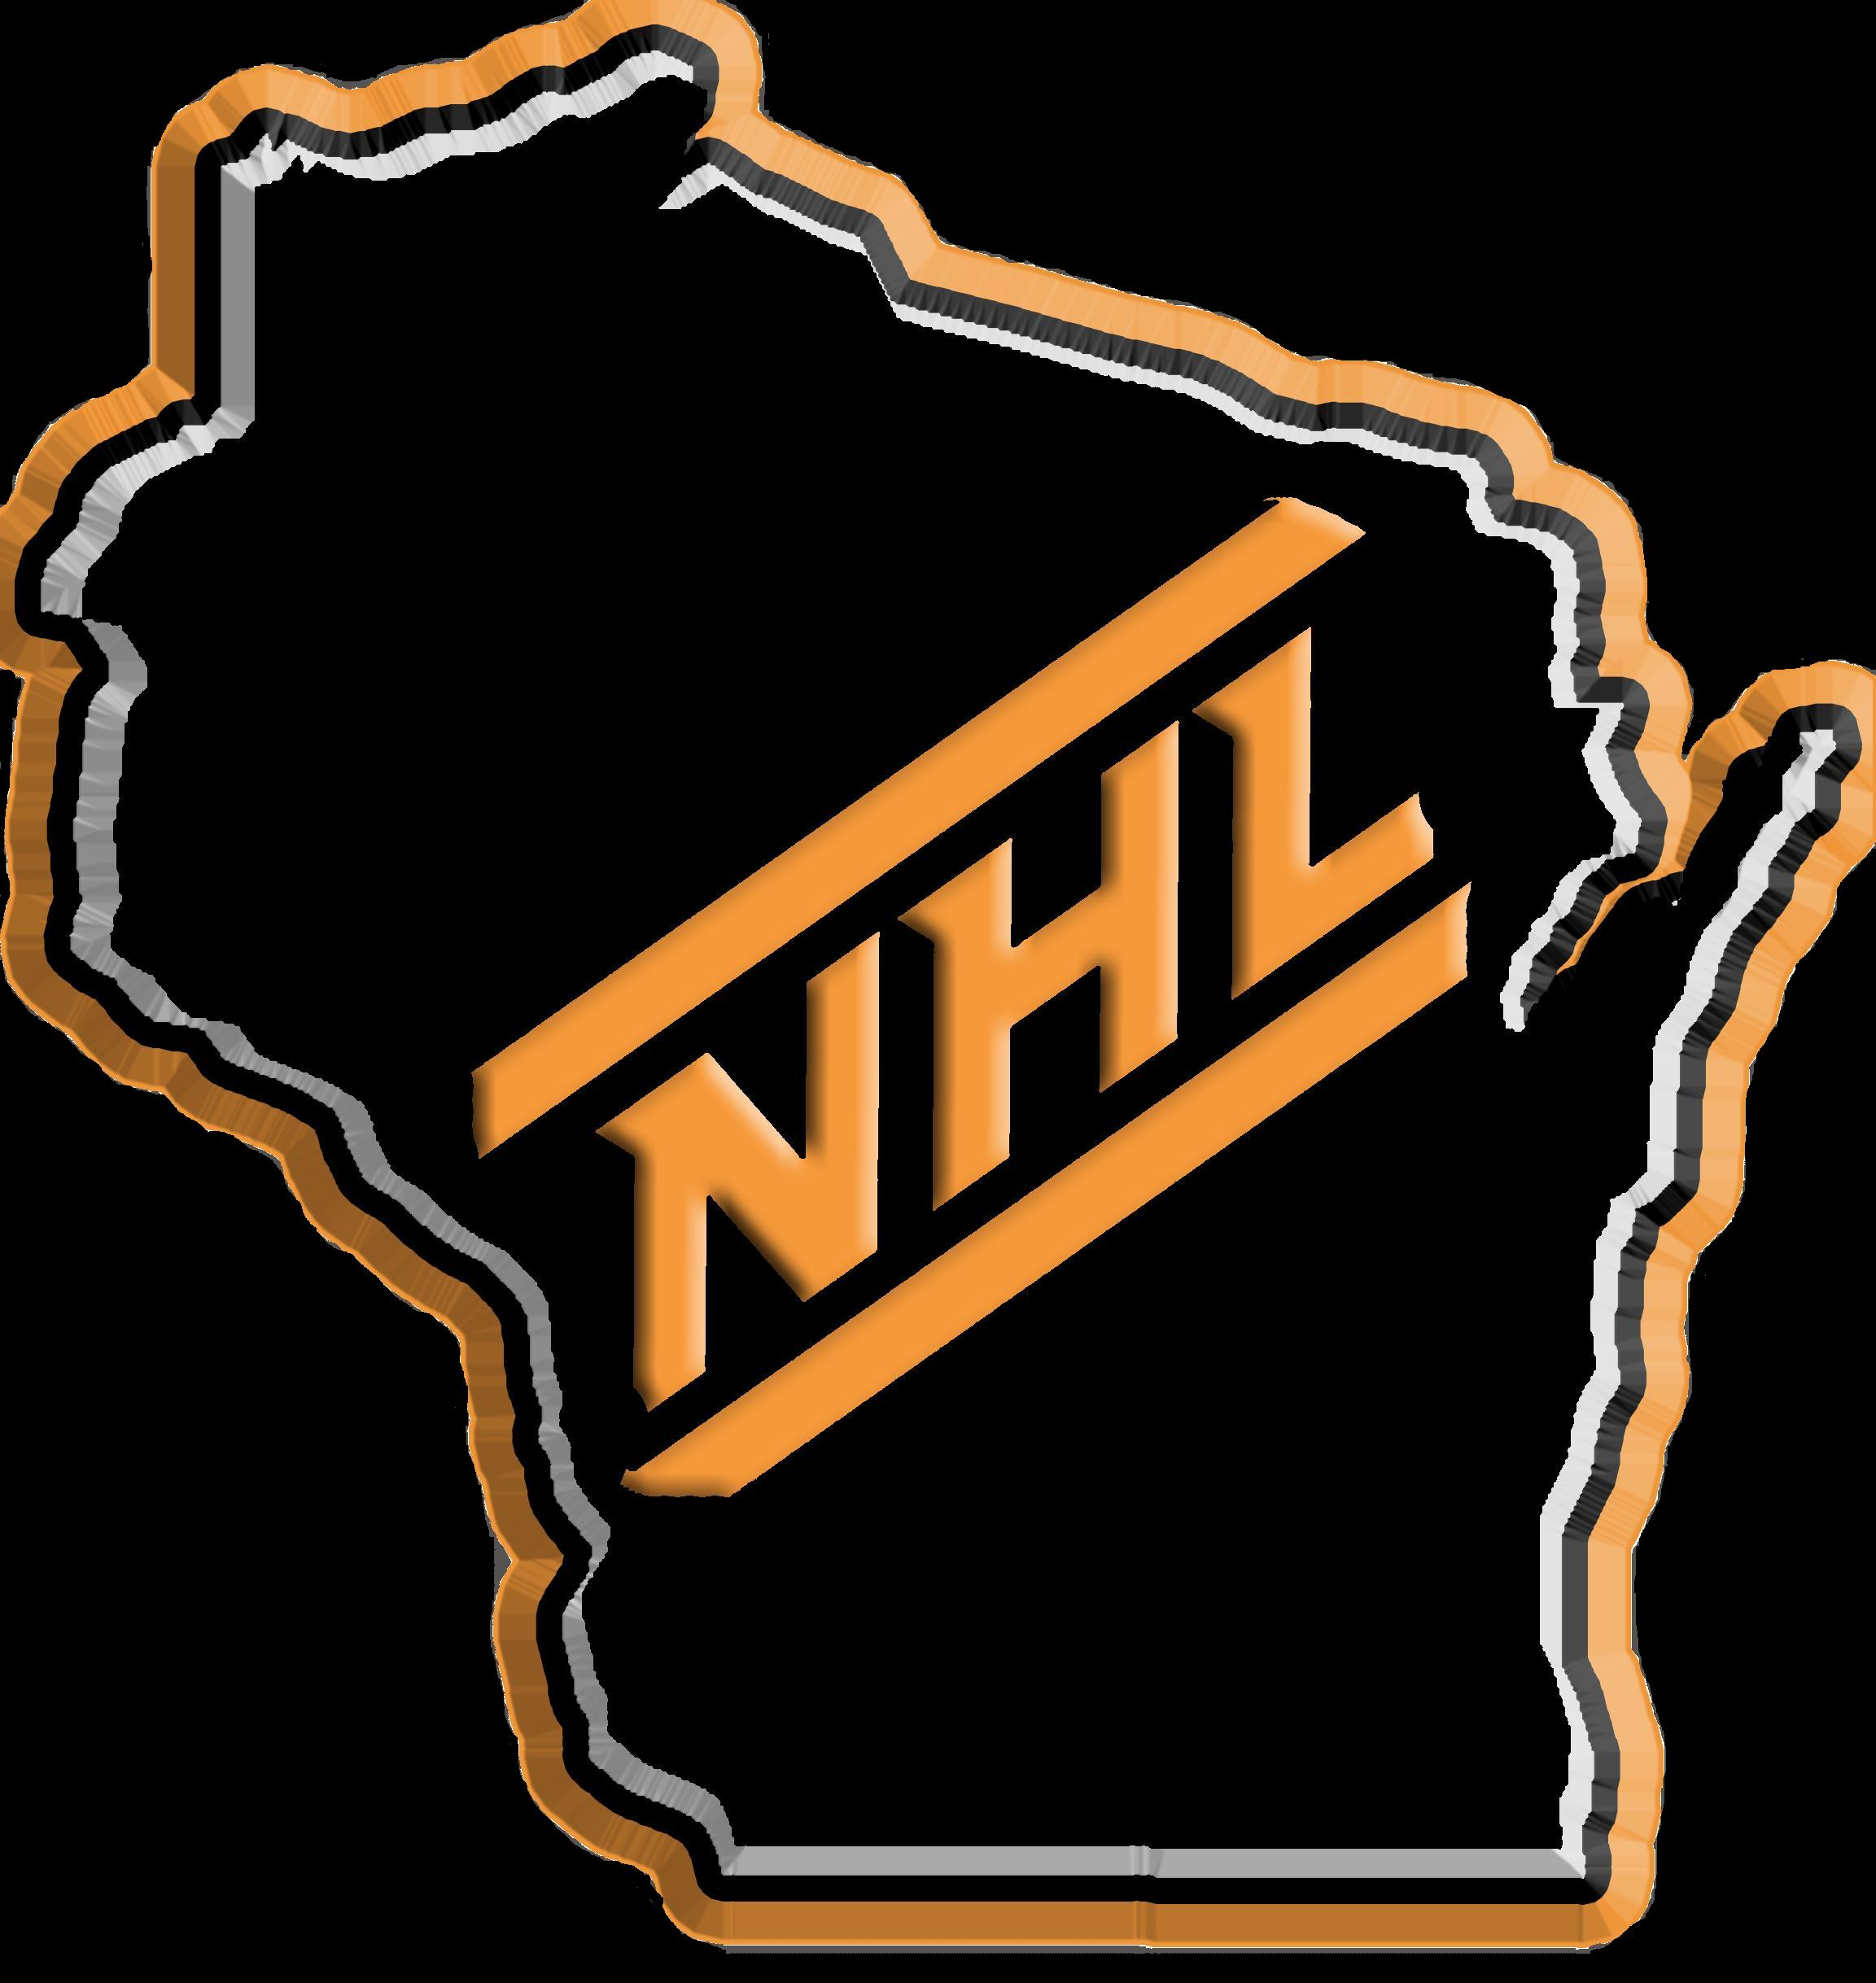 NHl in wisconsin logo